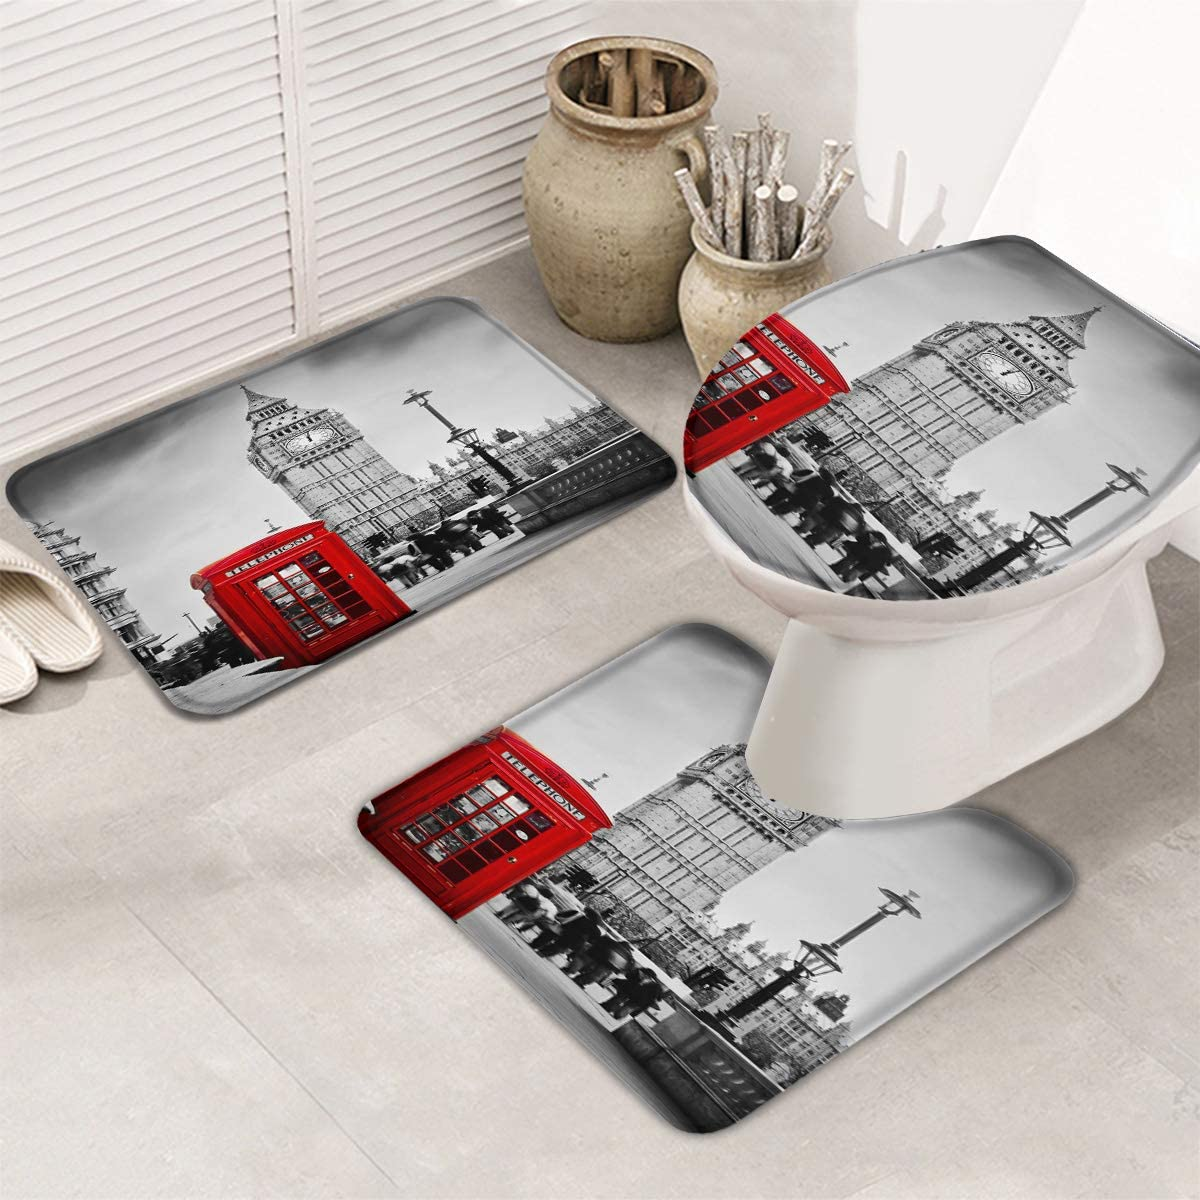 Women Trend 3 Piece Bath Rugs Set Non-Slip Bathroom Mats Absorbent Contour Soft Mat Toilet Lid Cover Bathroom Decor Set- Big Ben and Red Phone Booth in London 18